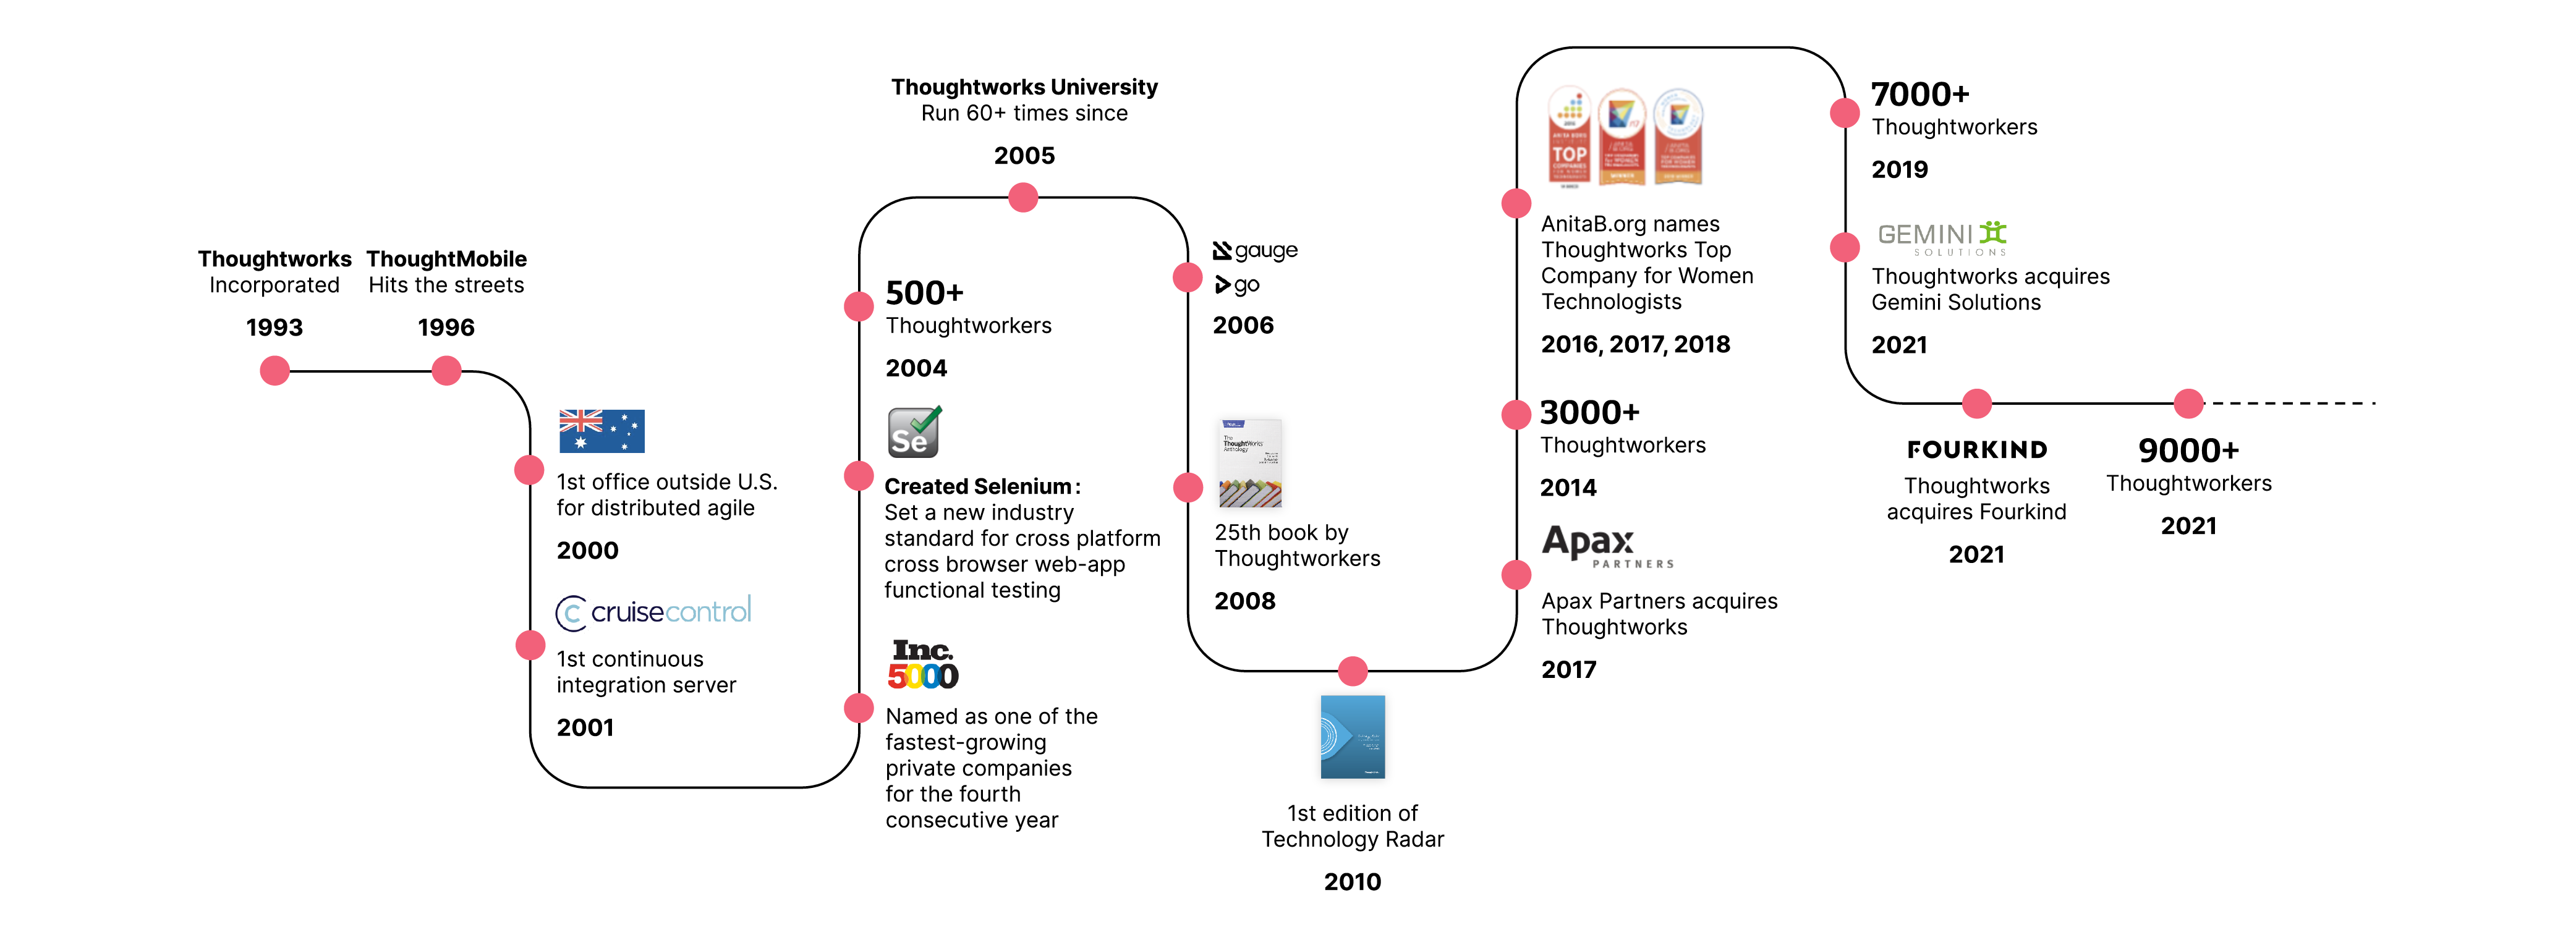 Thoughtworks timeline